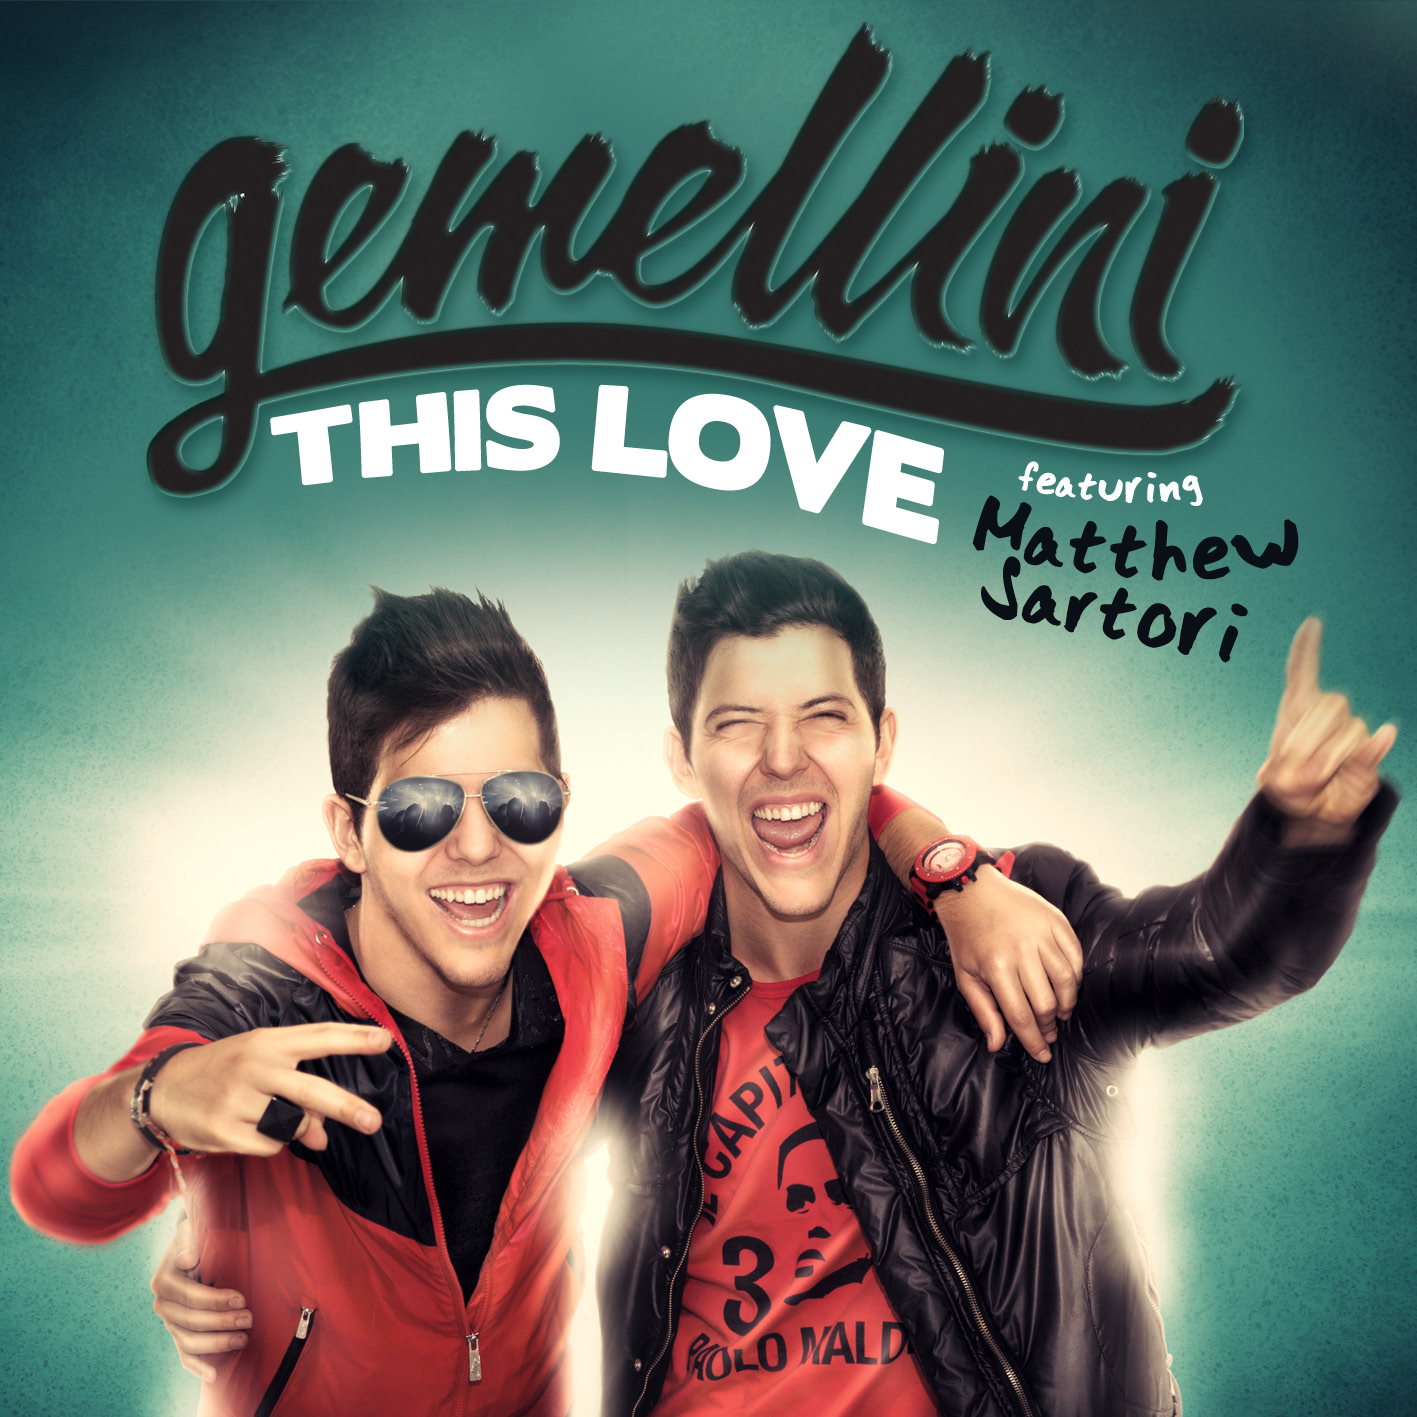 Gemellini feat. Matthew Sartori – This Love (Wilzlo Remix)